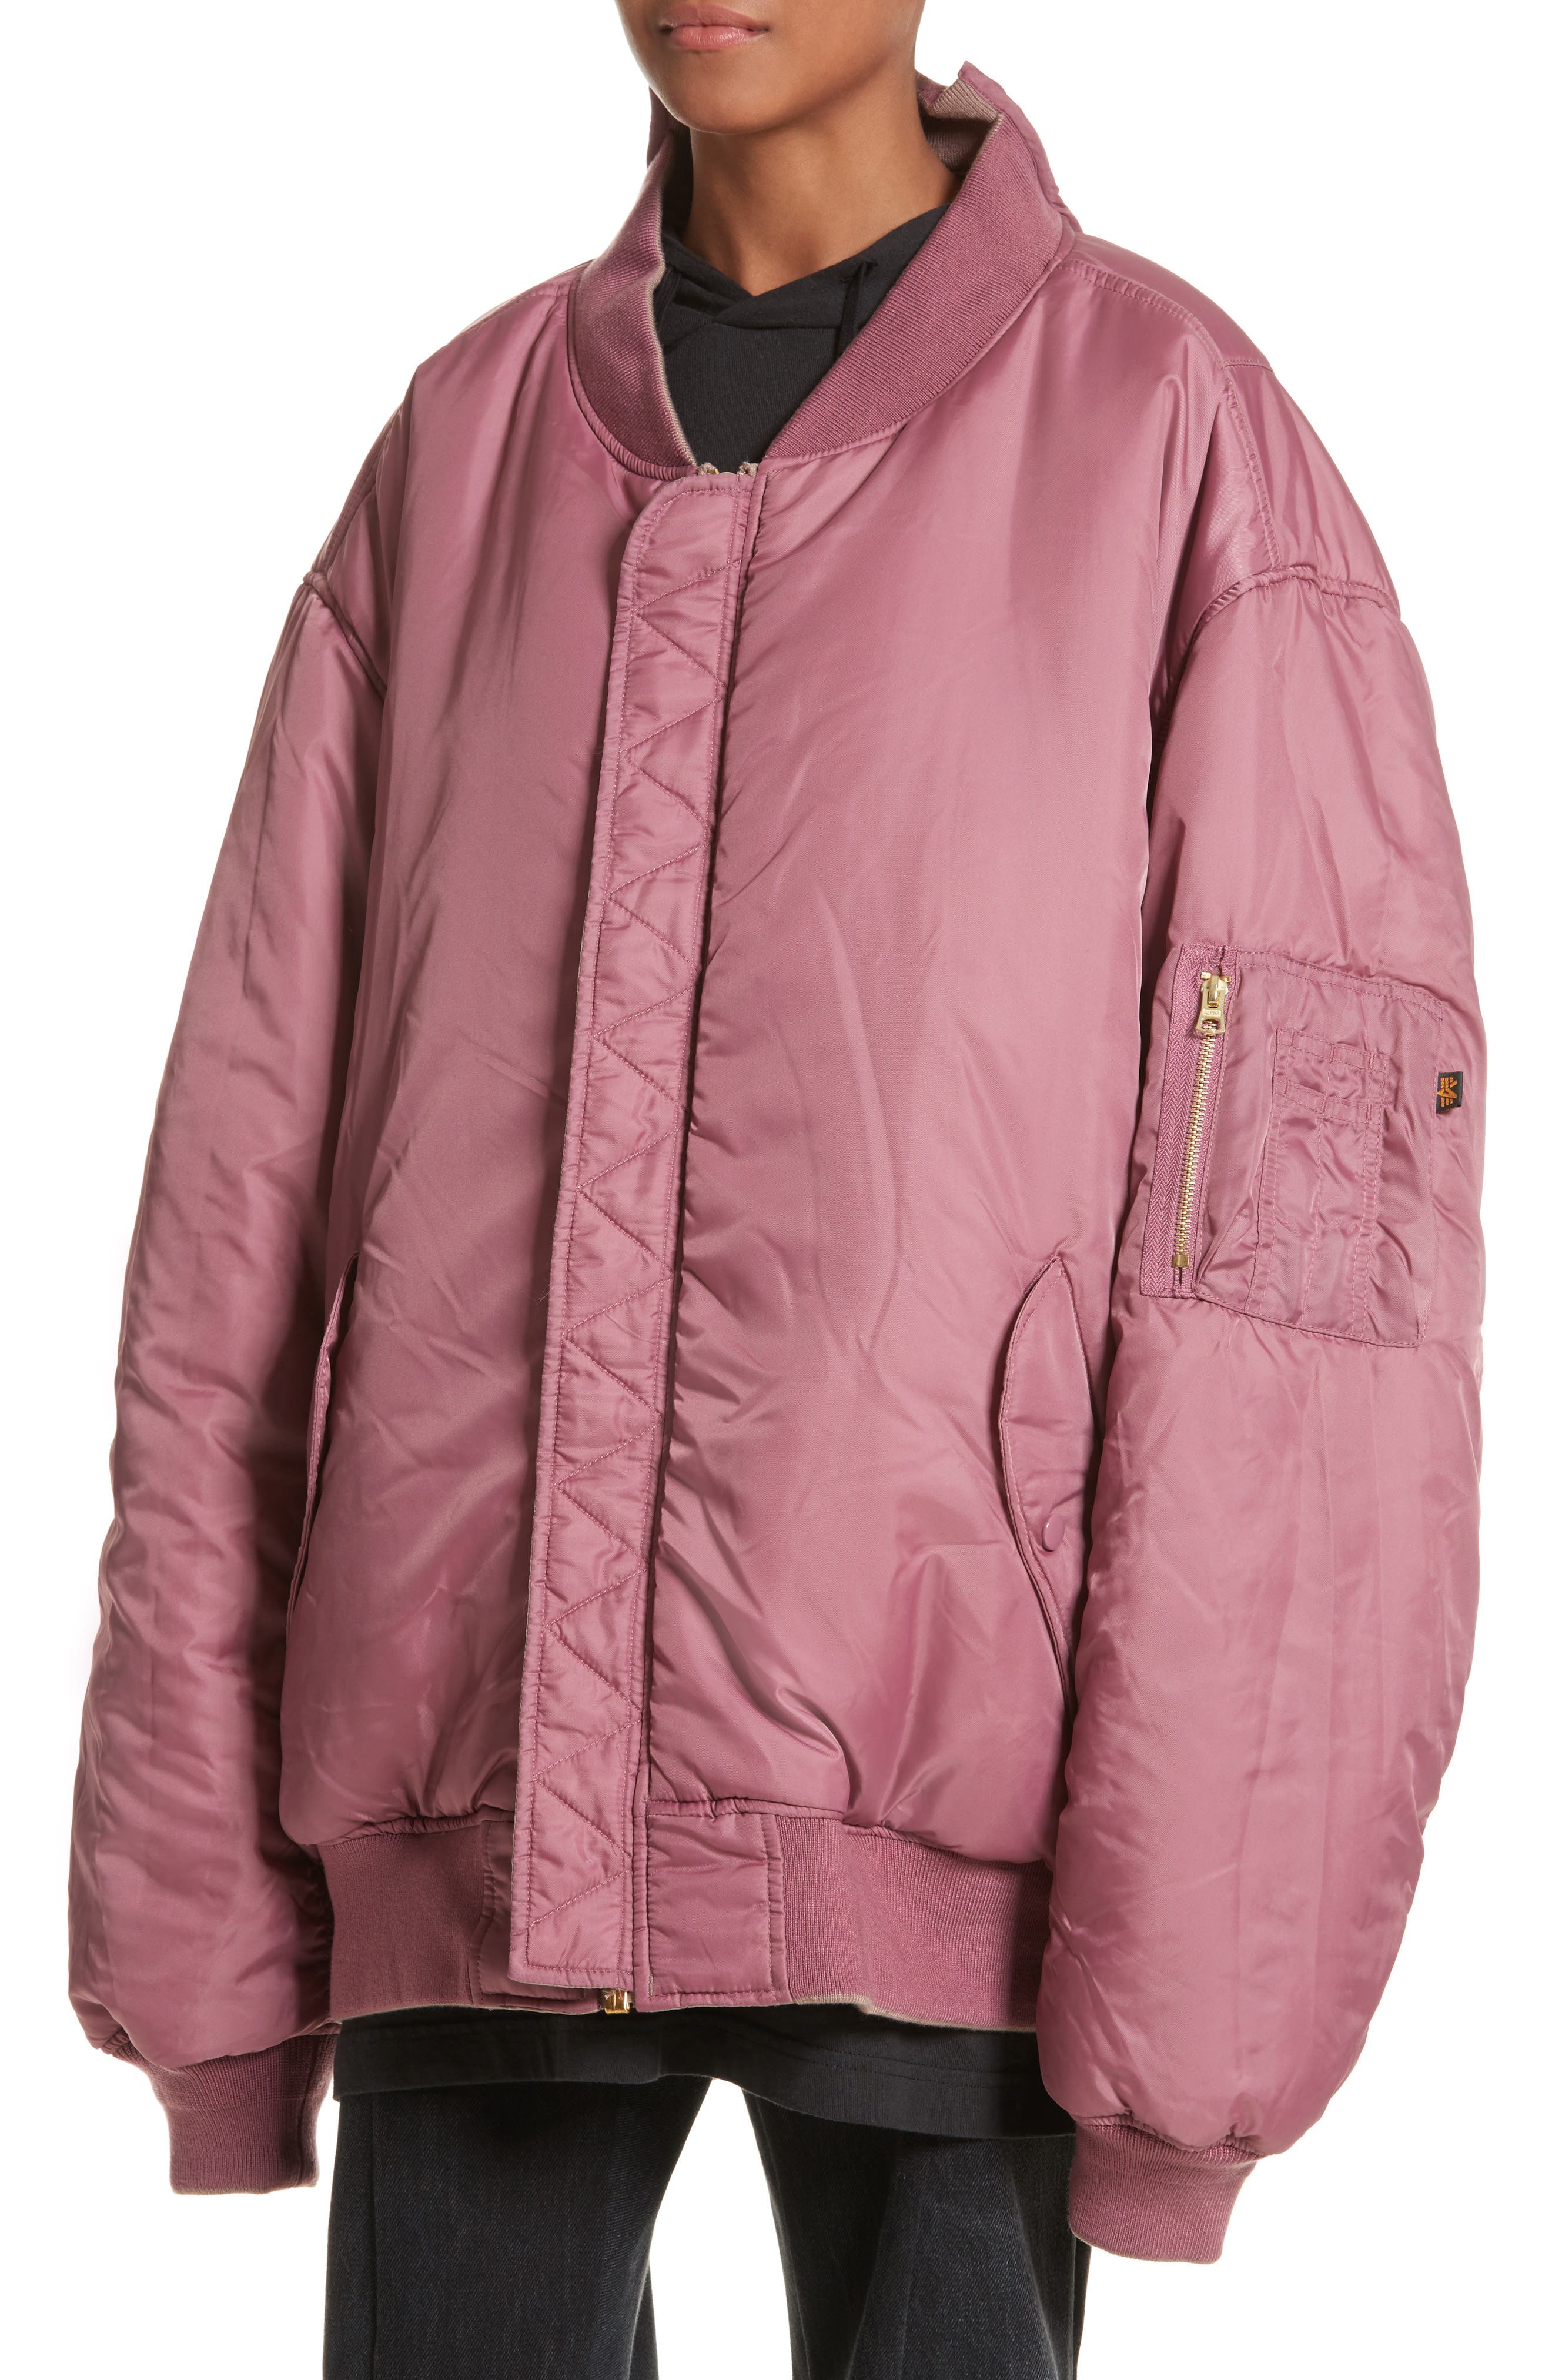 x Alpha Industries Reversible Bomber Jacket,                             Alternate thumbnail 6, color,                             Rose Pink